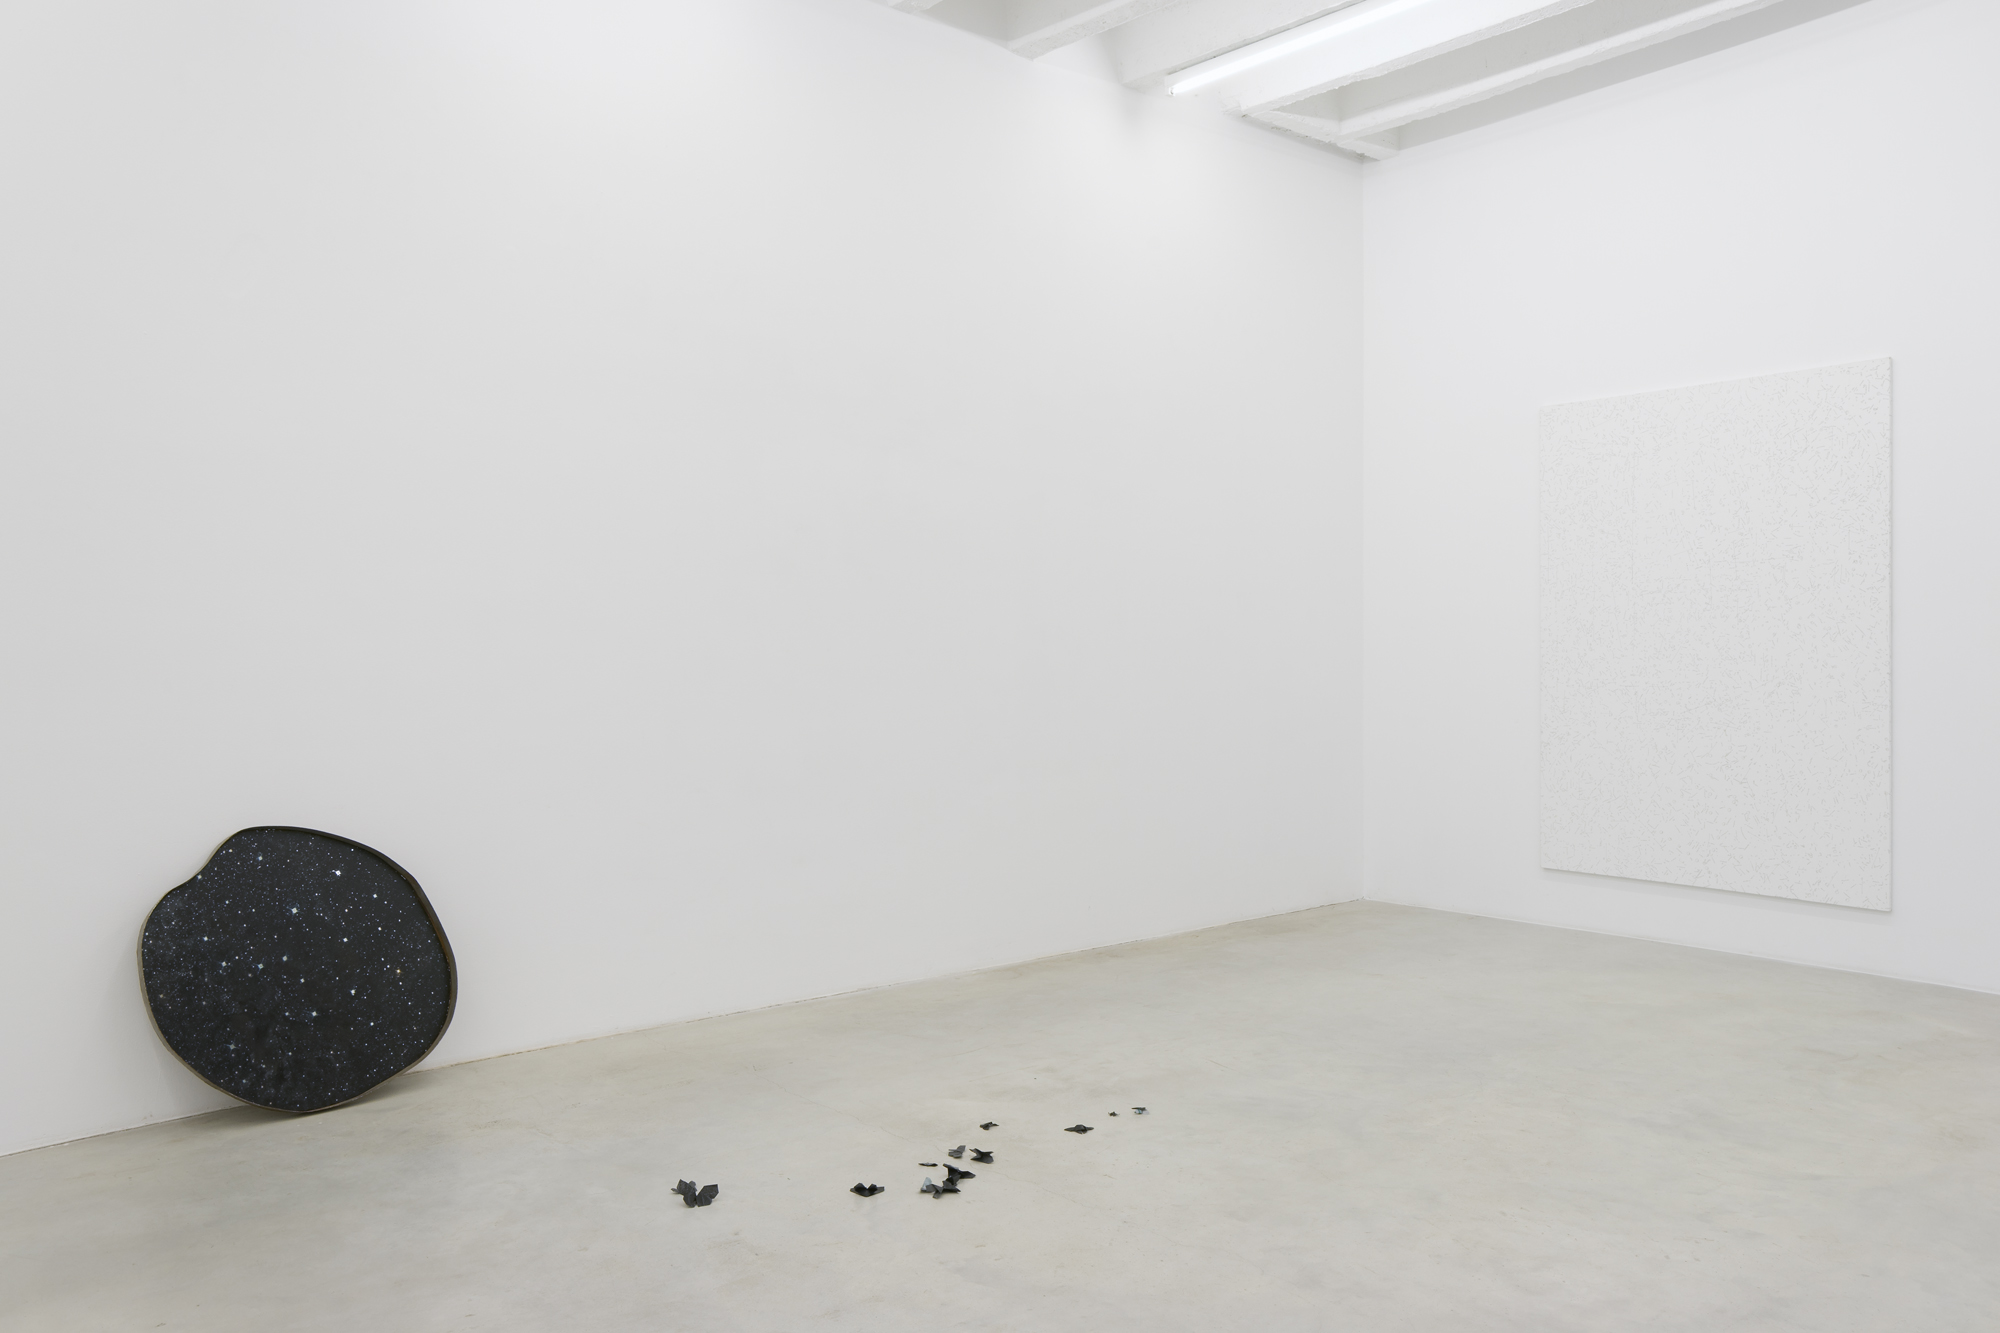 Exhibition view at Galerija Gregor Podnar, Berlin, 2015. Photo: Marcus Schneider